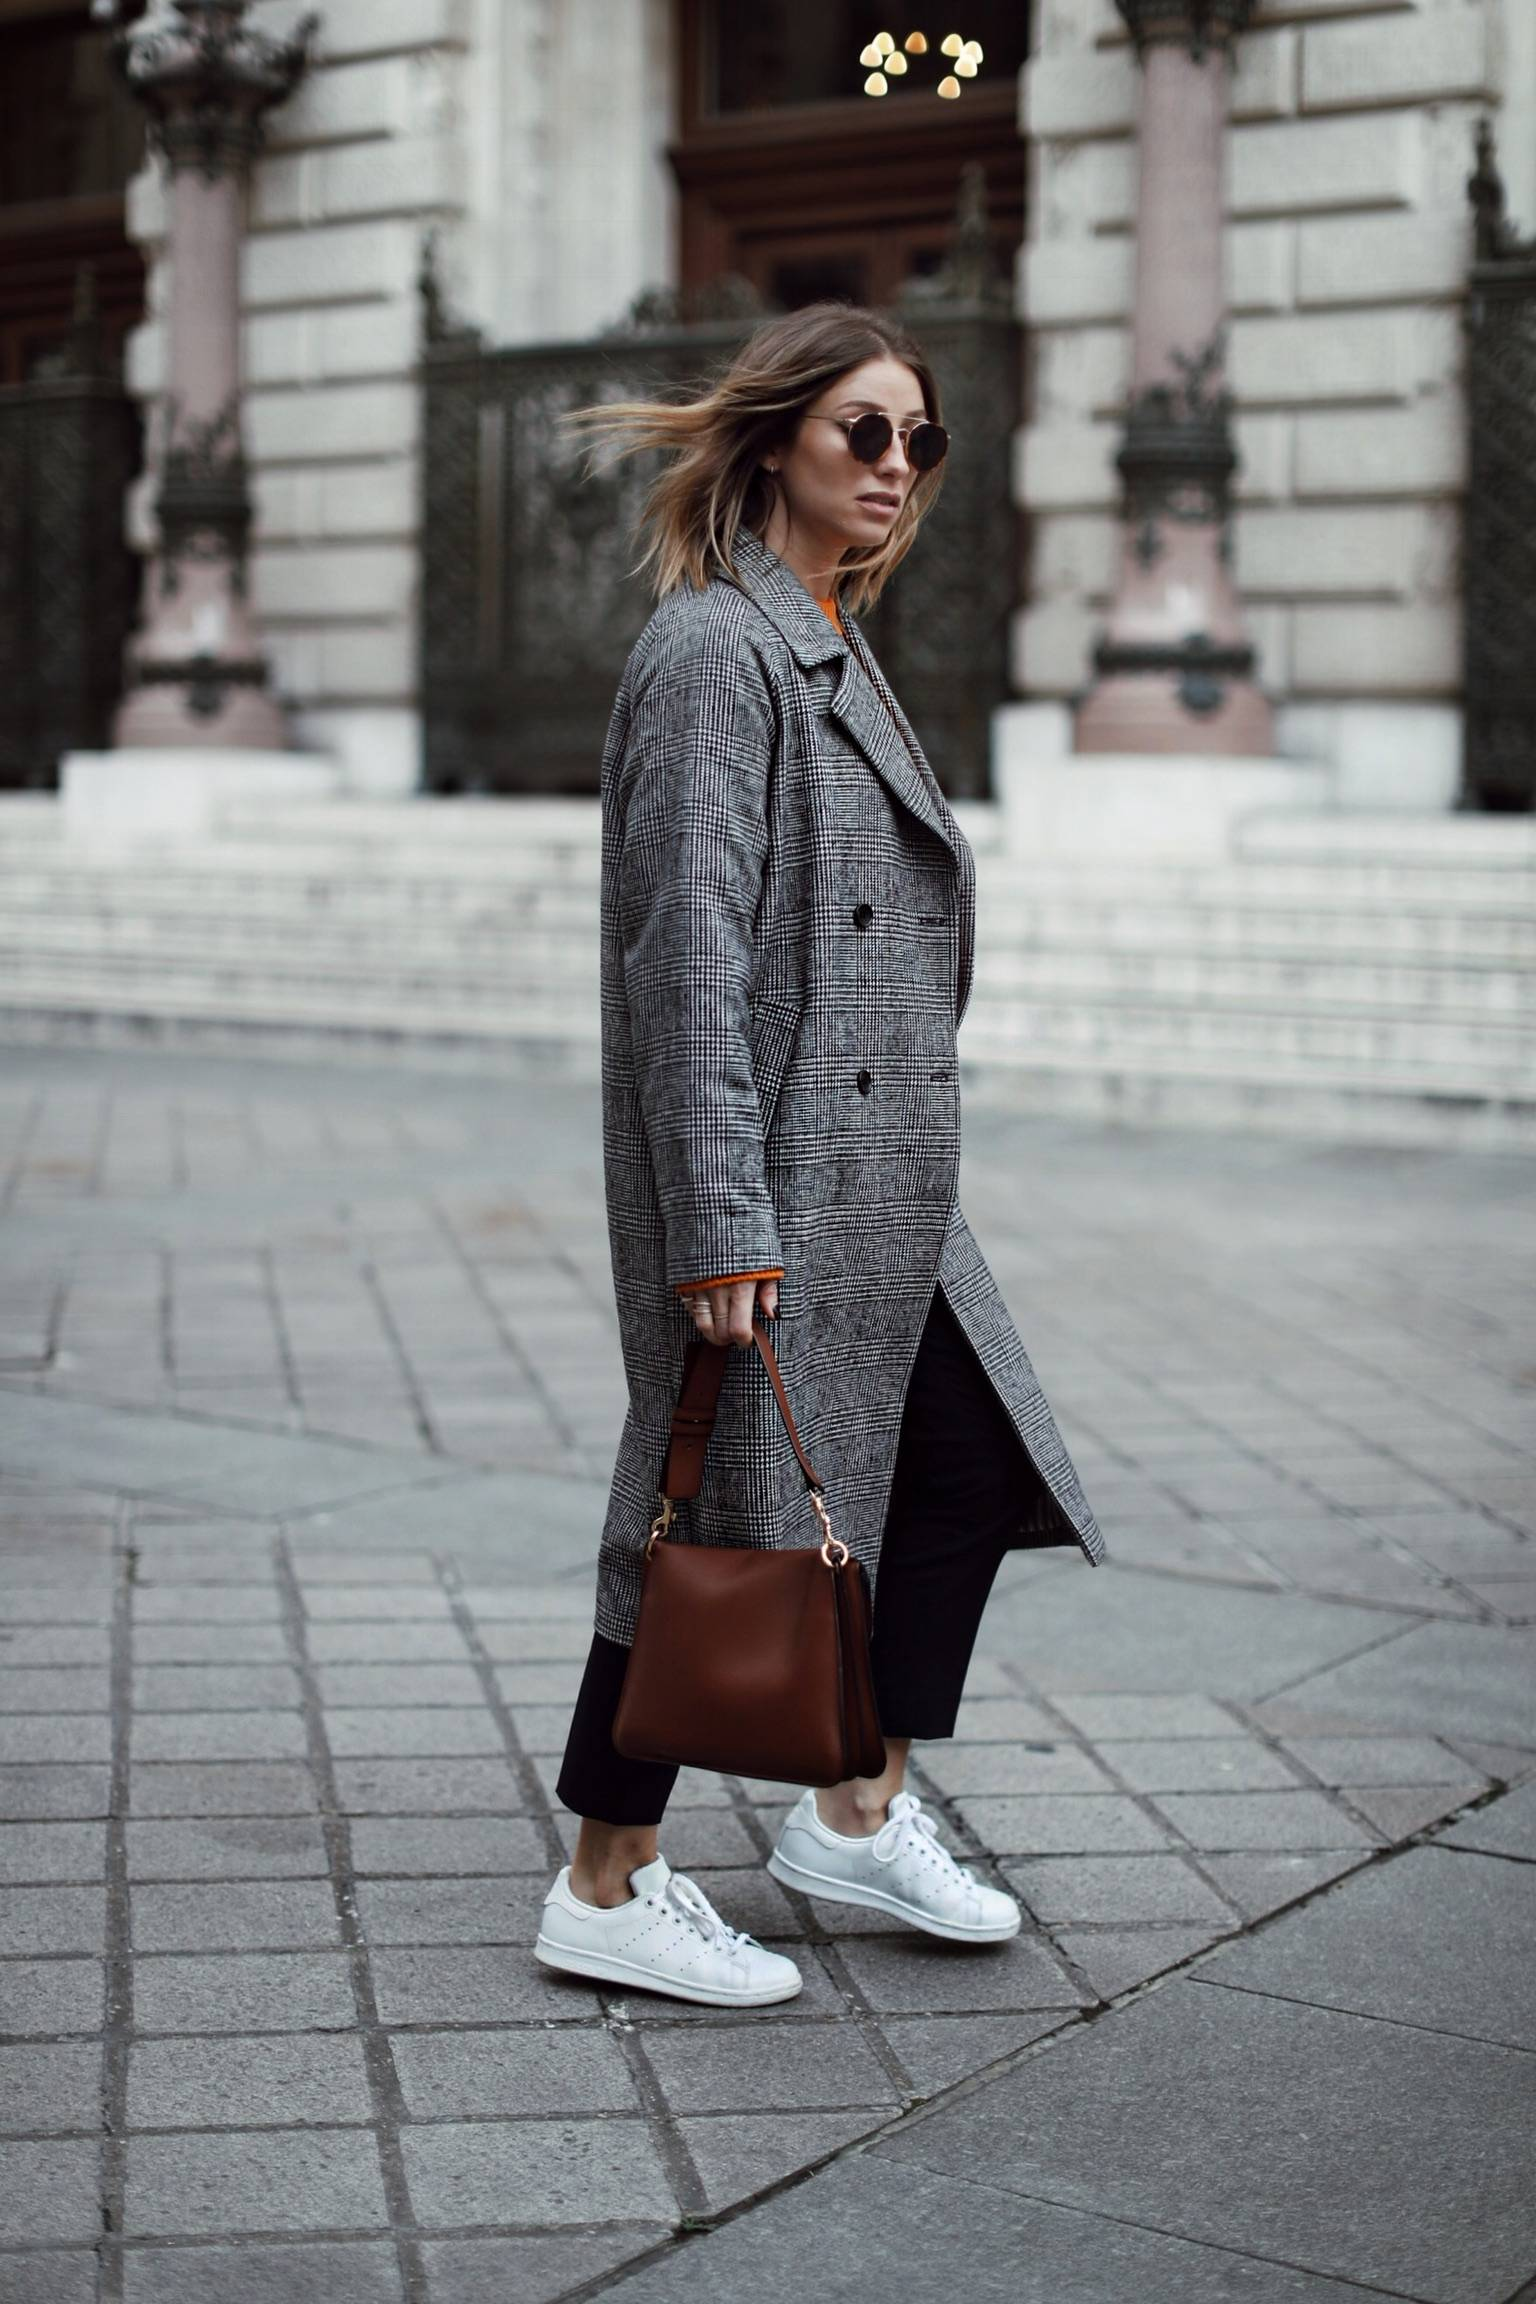 Style and beauty blogger Jill Lansky of The August Diaries on what to wear when traveling in plaid coat, sneakers, acne sweater